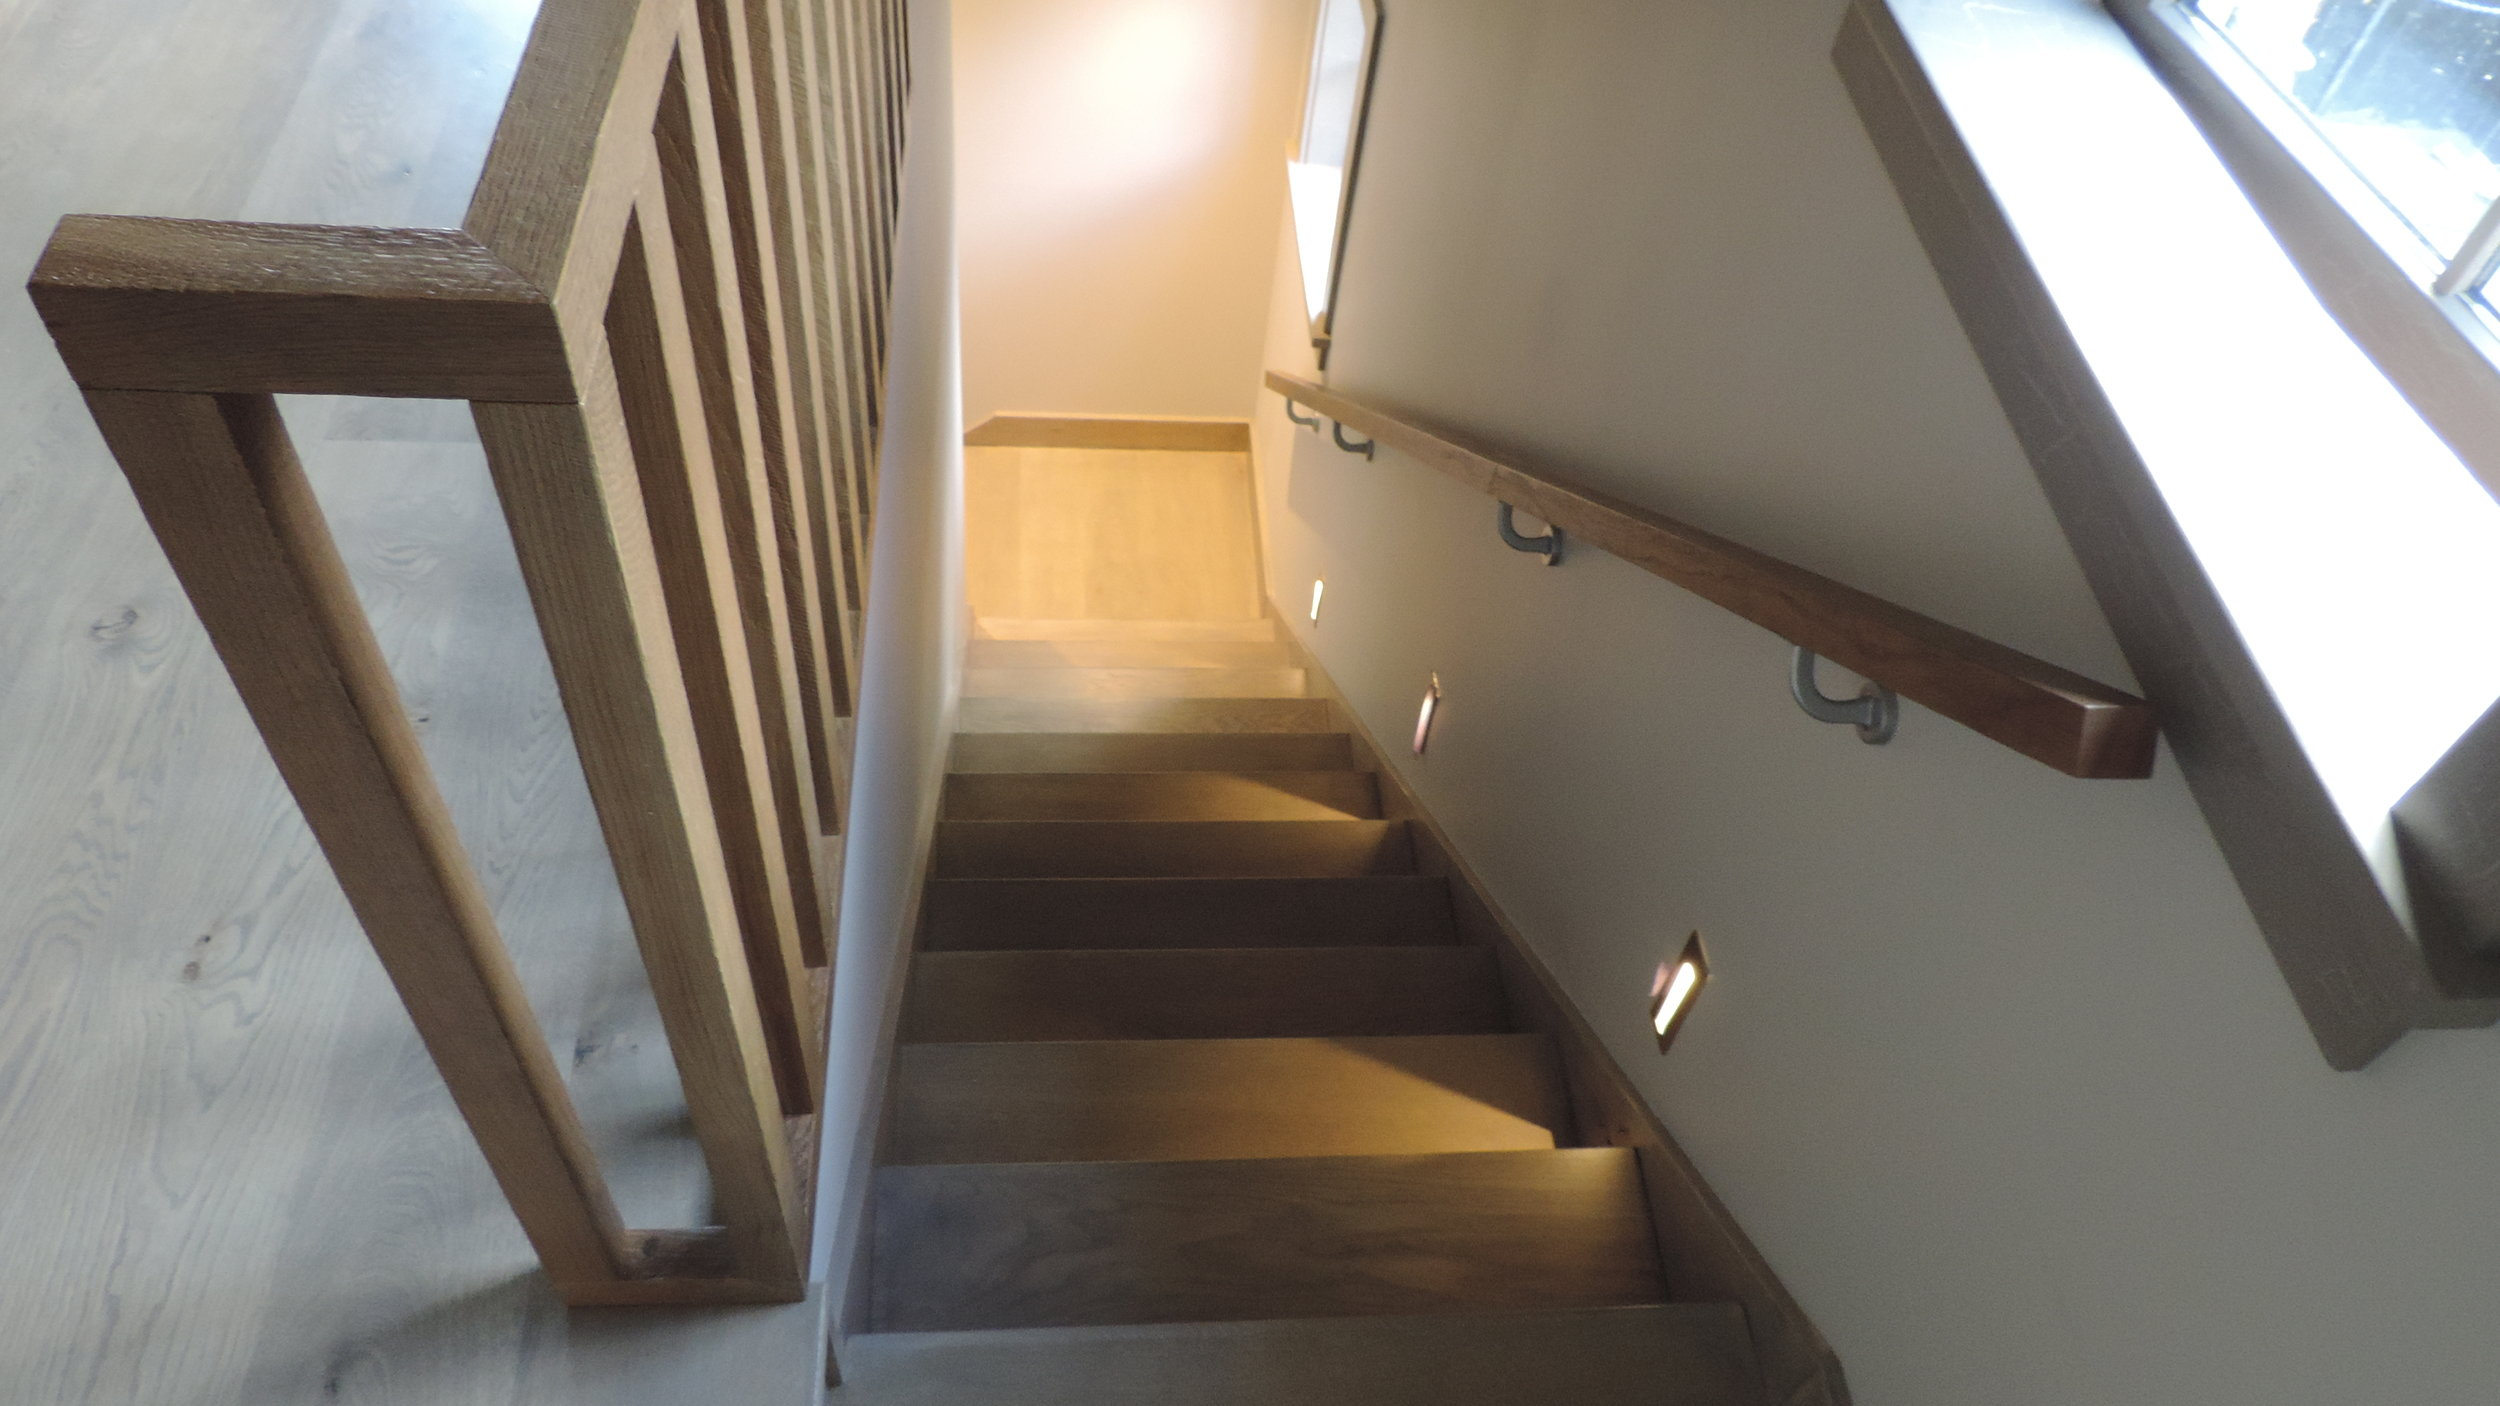 Timber stairs - Our team can manufacture custom and architecturally designed stair cases, balustrades and hand rails. We produce solid timber designs as well as MDF for those of you who will lay carpet or floorings on your stairs.